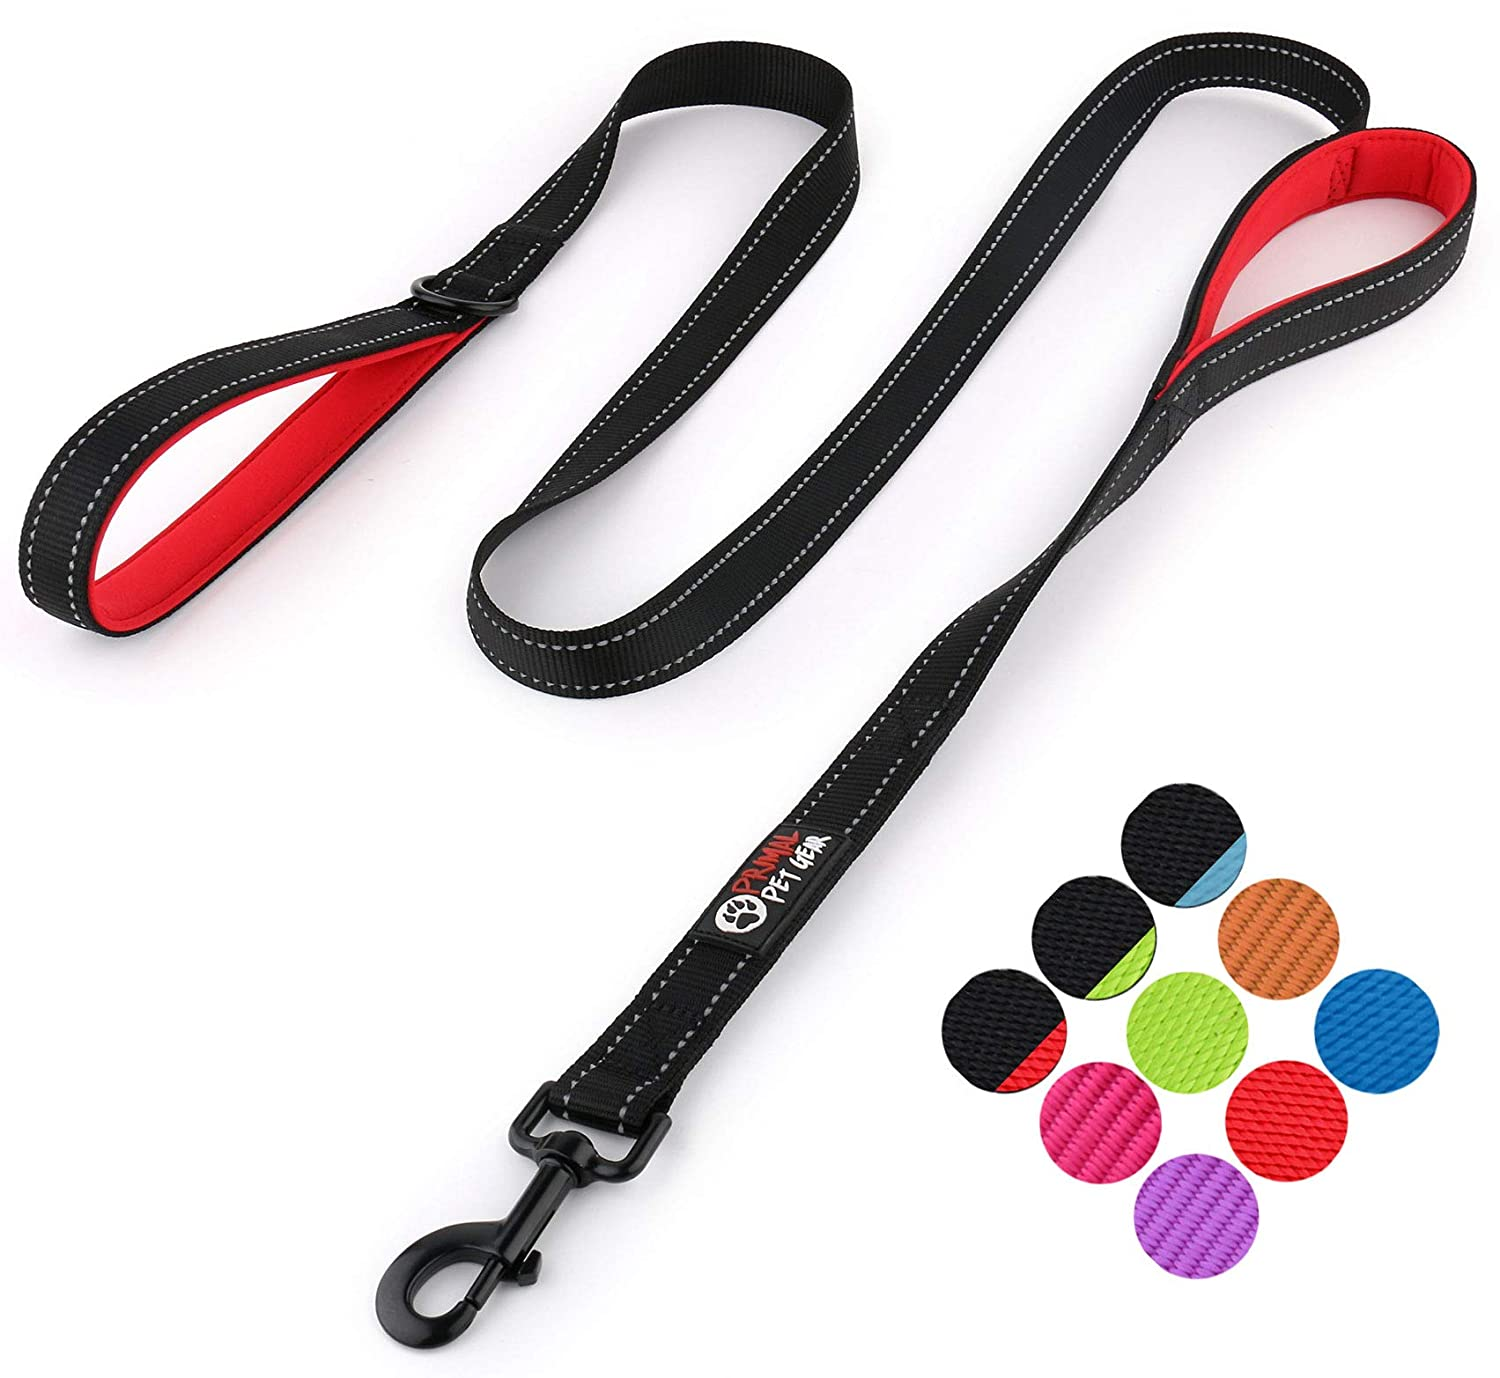 Double Handles Lead for Control Safety Training Leashes for Large Dogs or Medium Dogs Primal Pet Gear Dog Leash 6ft Long Heavy Duty Traffic Padded Two Handle